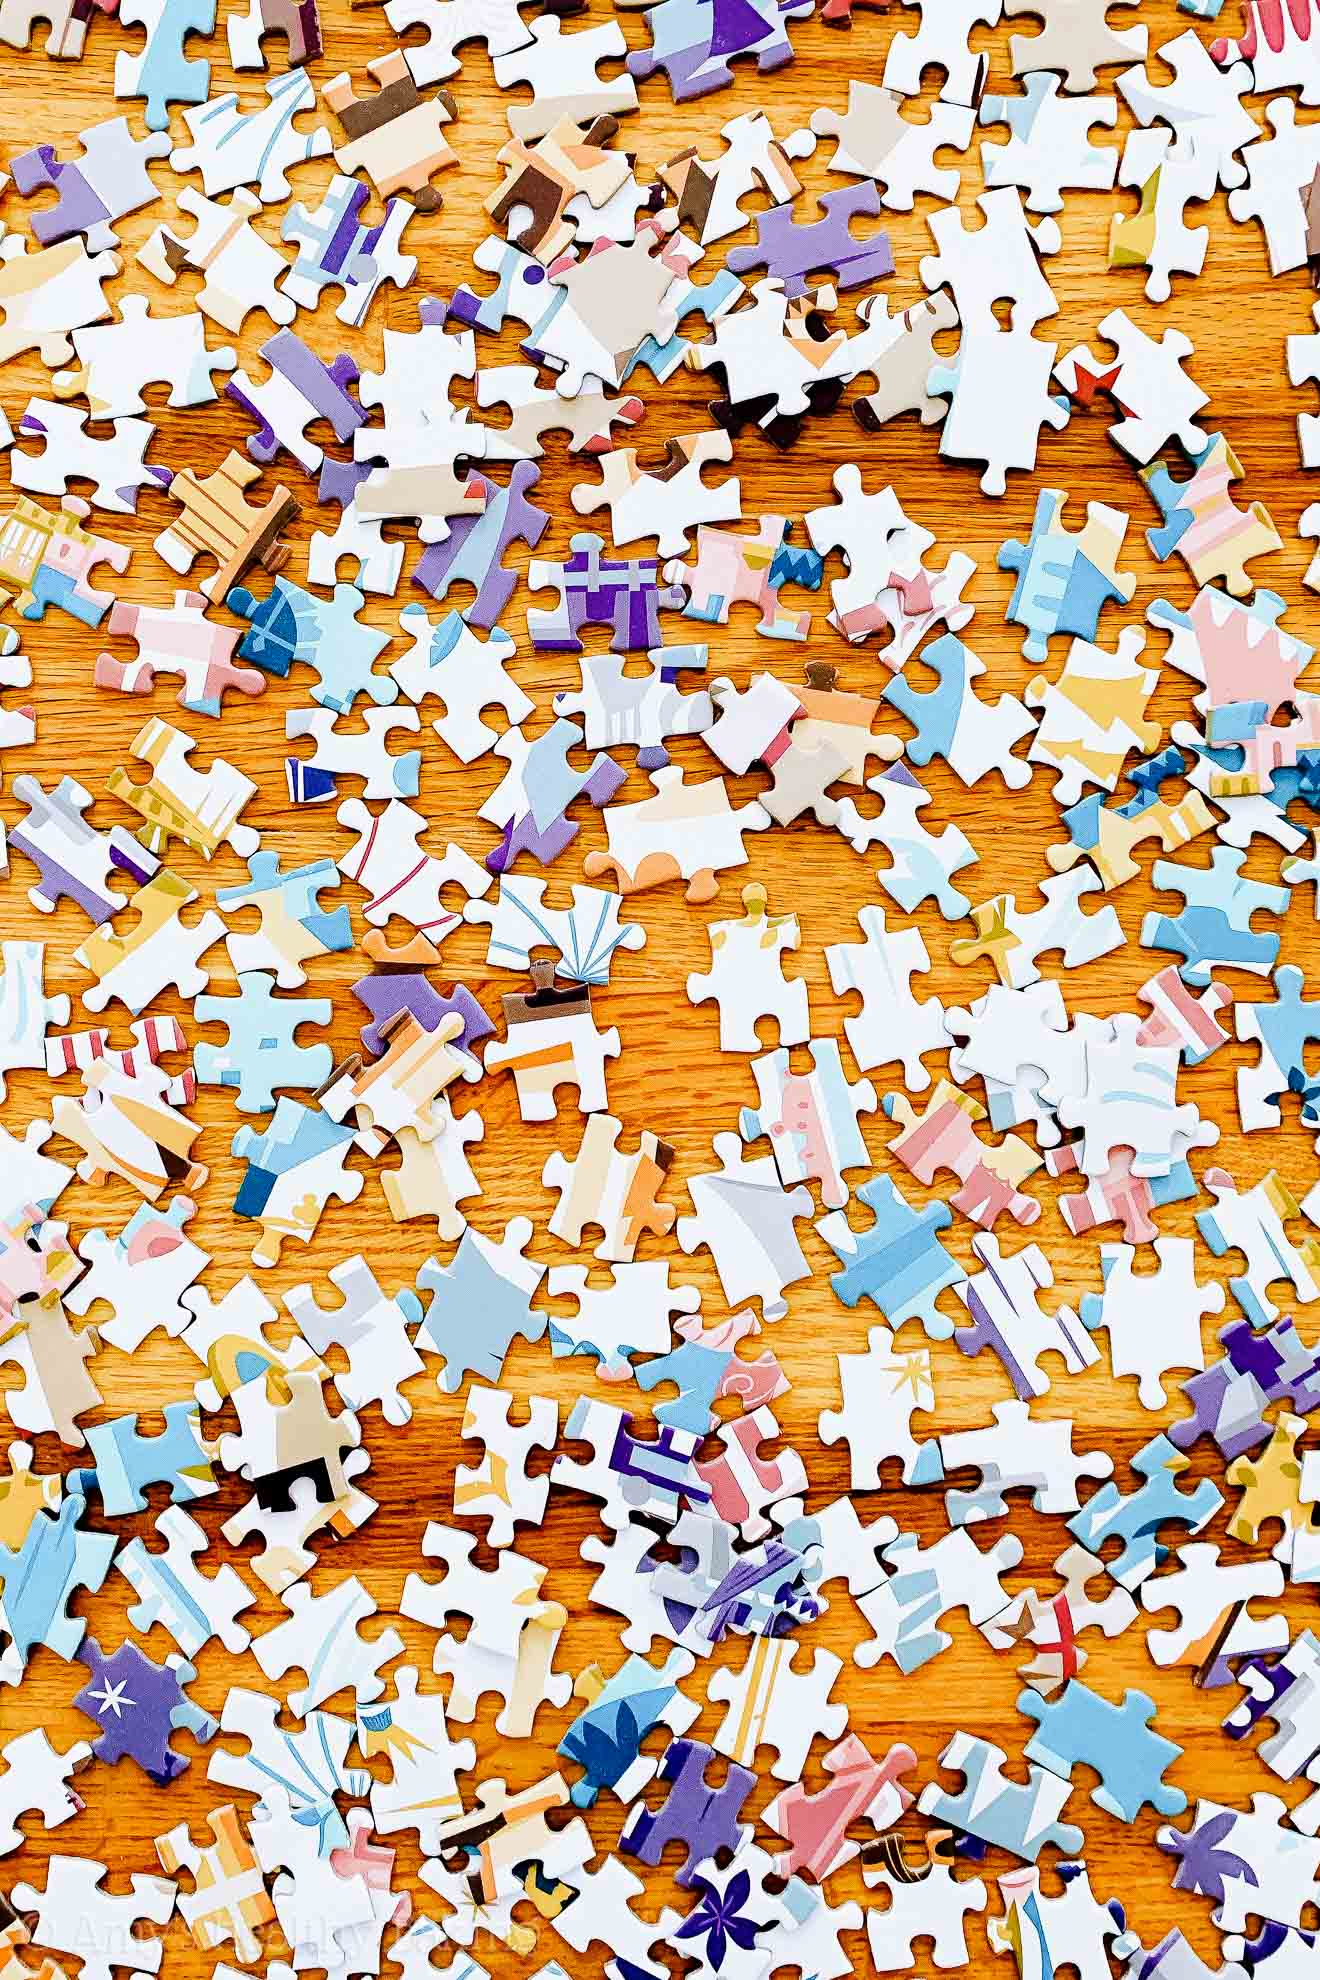 Pastel-colored puzzle pieces on a wooden table